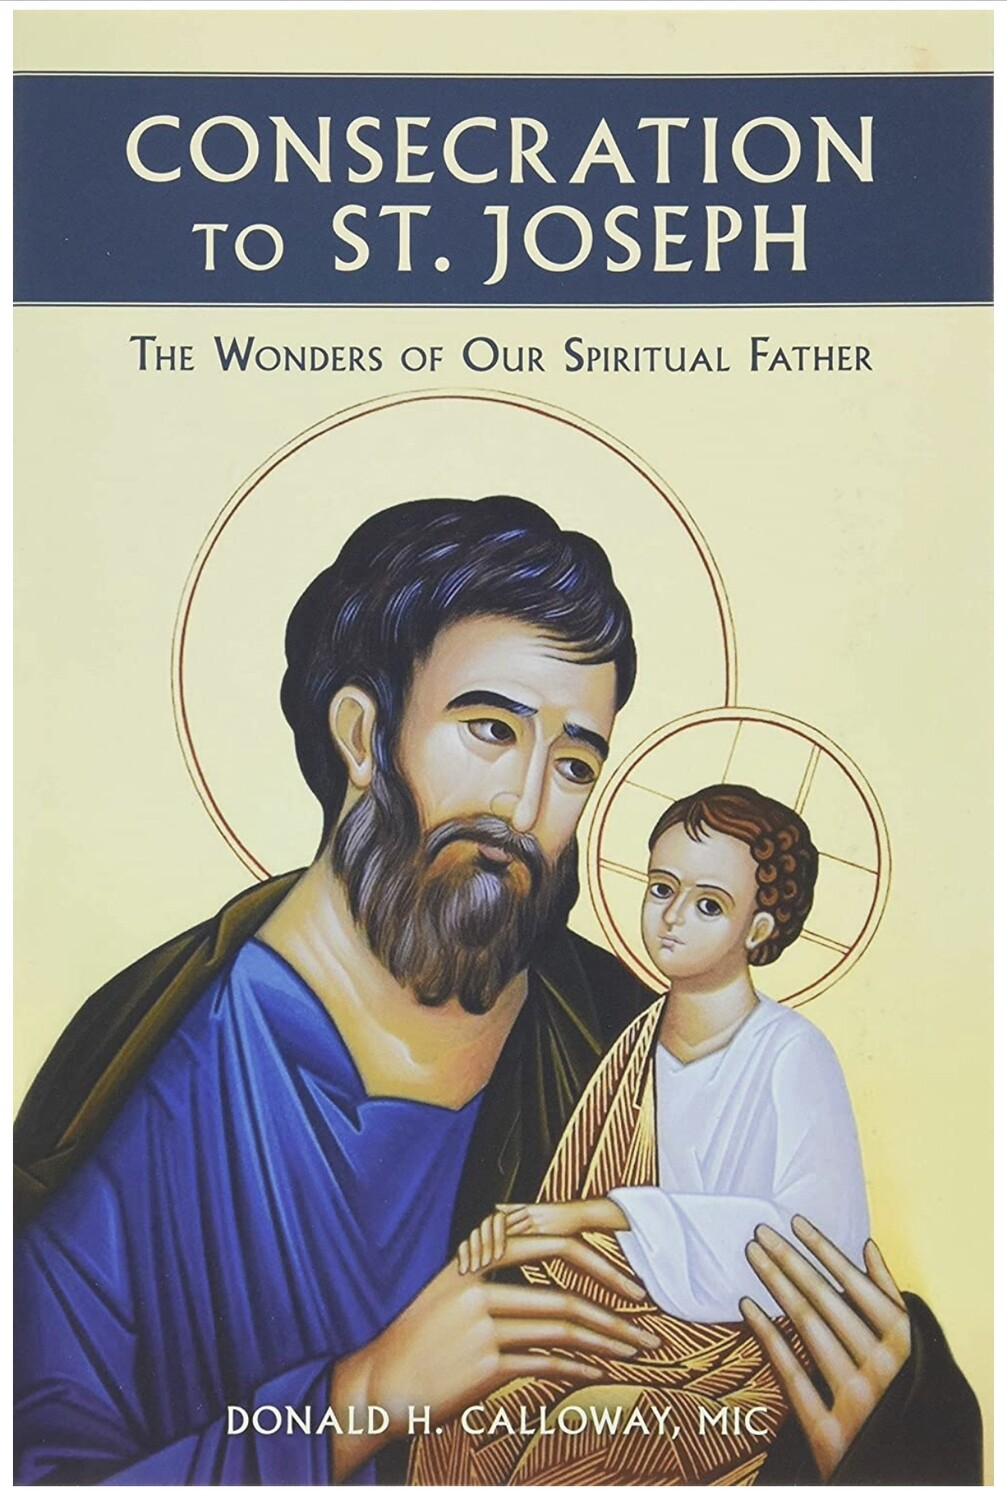 Consecration to St Joseph: The Wonders of our Spiritual Father by Donald H. Calloway